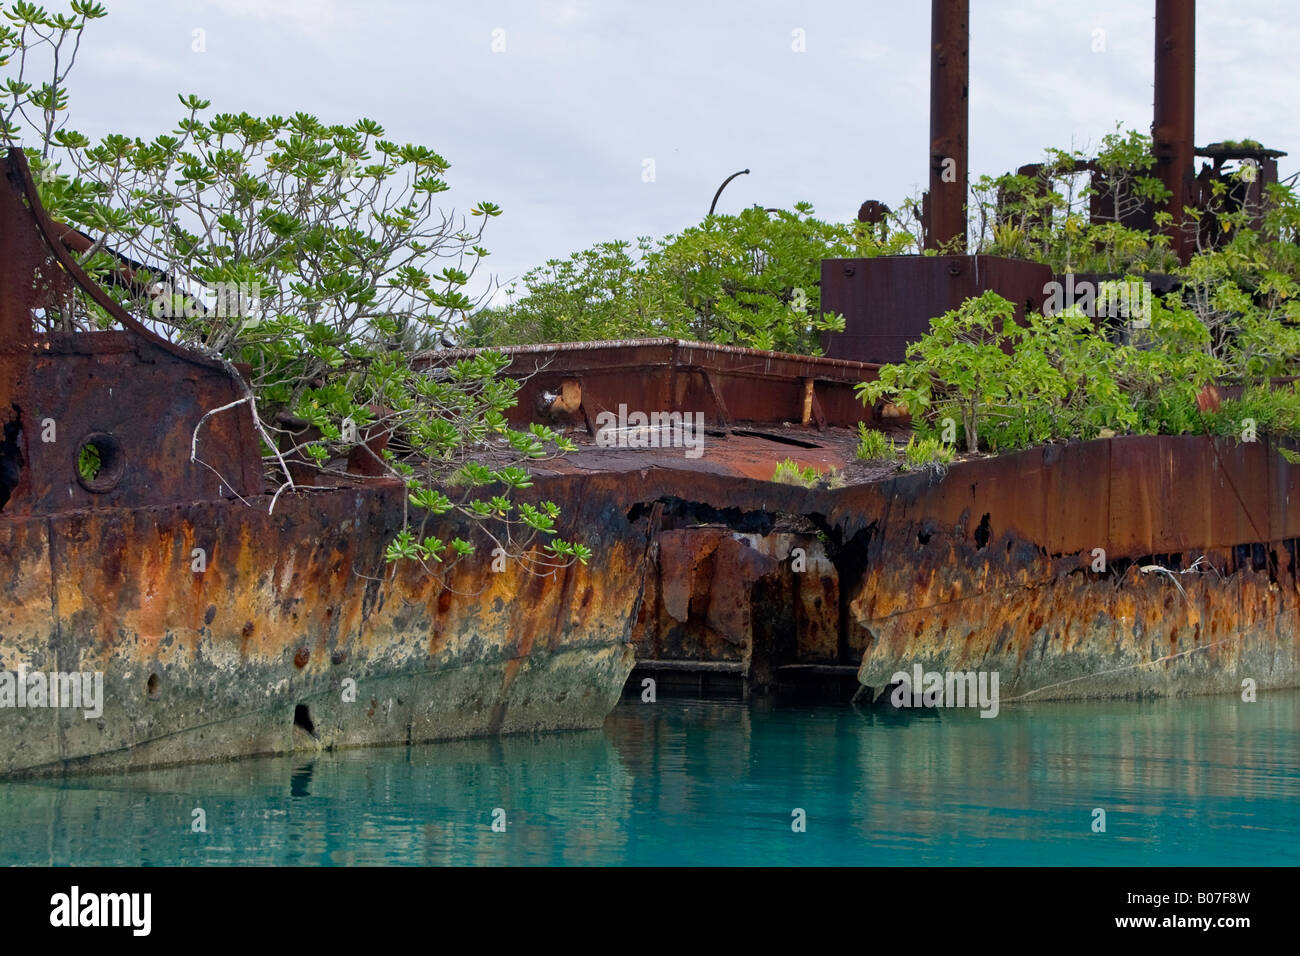 WWII Shipwreck, Jaluit Atoll, Marshall Islands - Stock Image